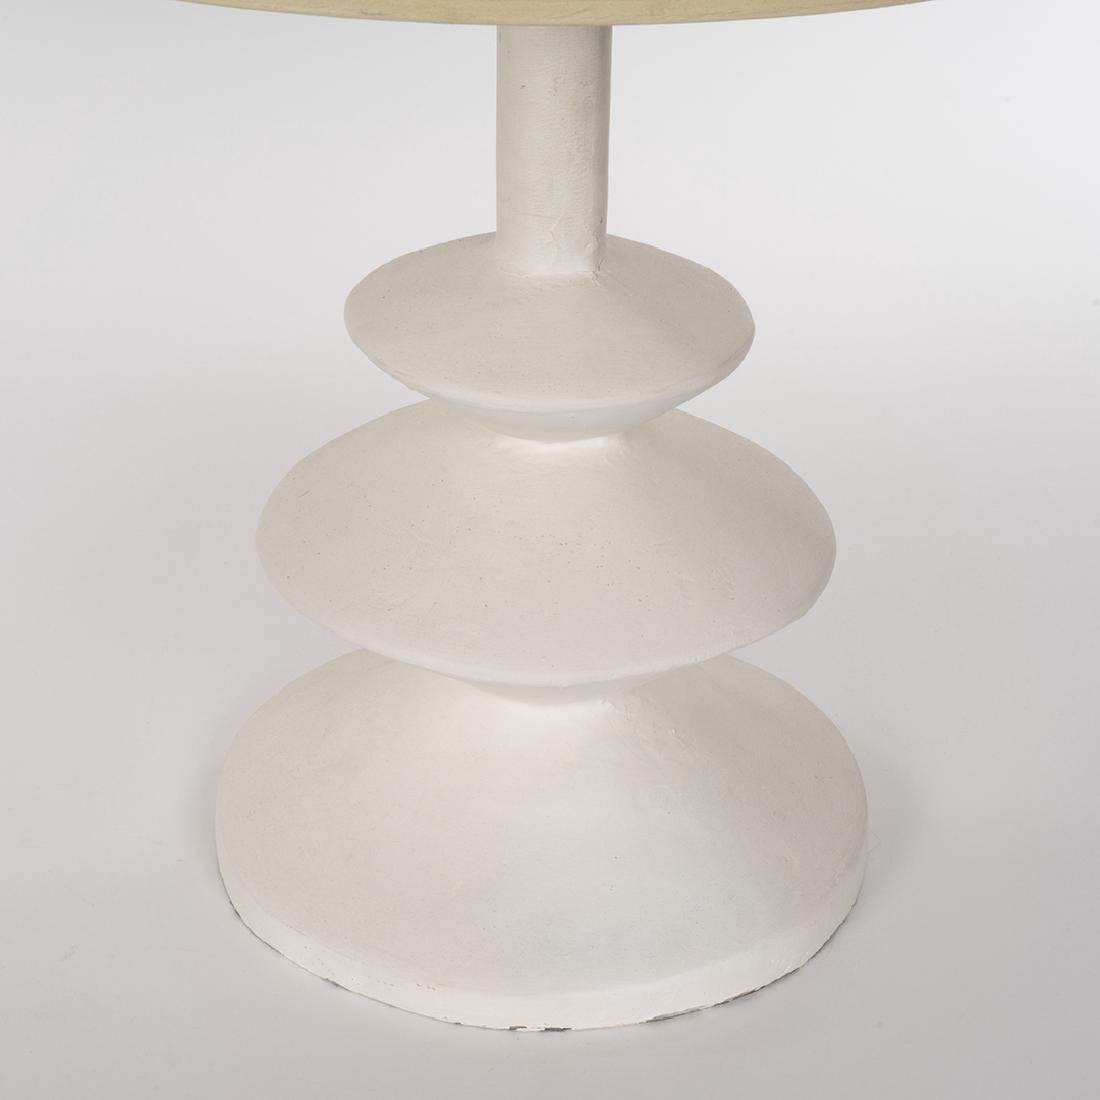 Diego Giacometti Style Lamps (2) - 3